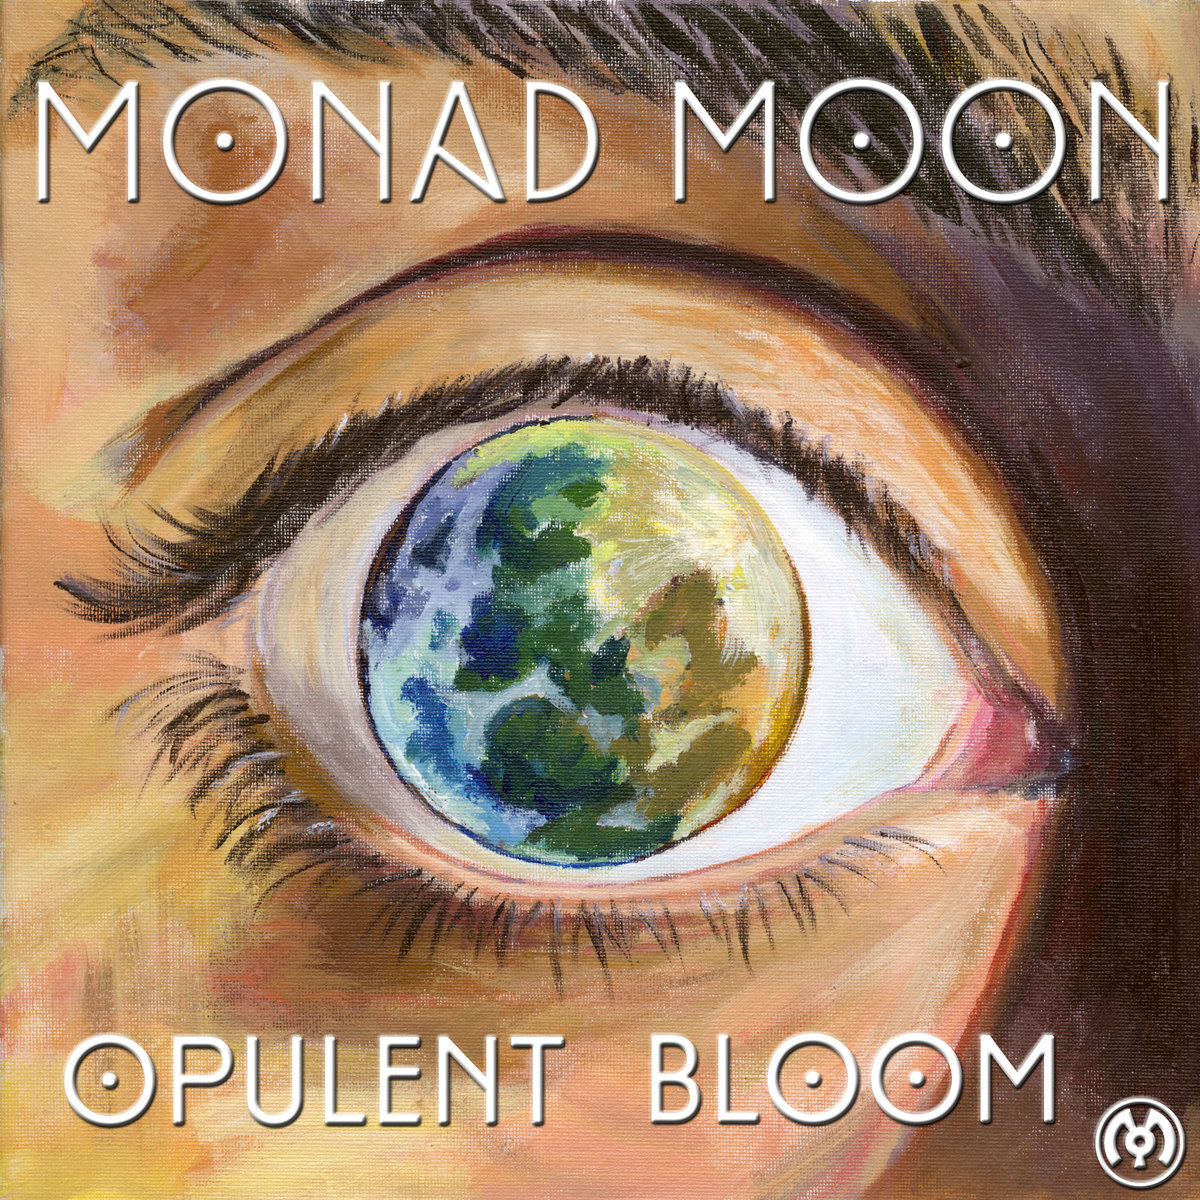 Monad Moon - Opulent Bloom @ 'Opulent Bloom' album (electronic, dubstep)